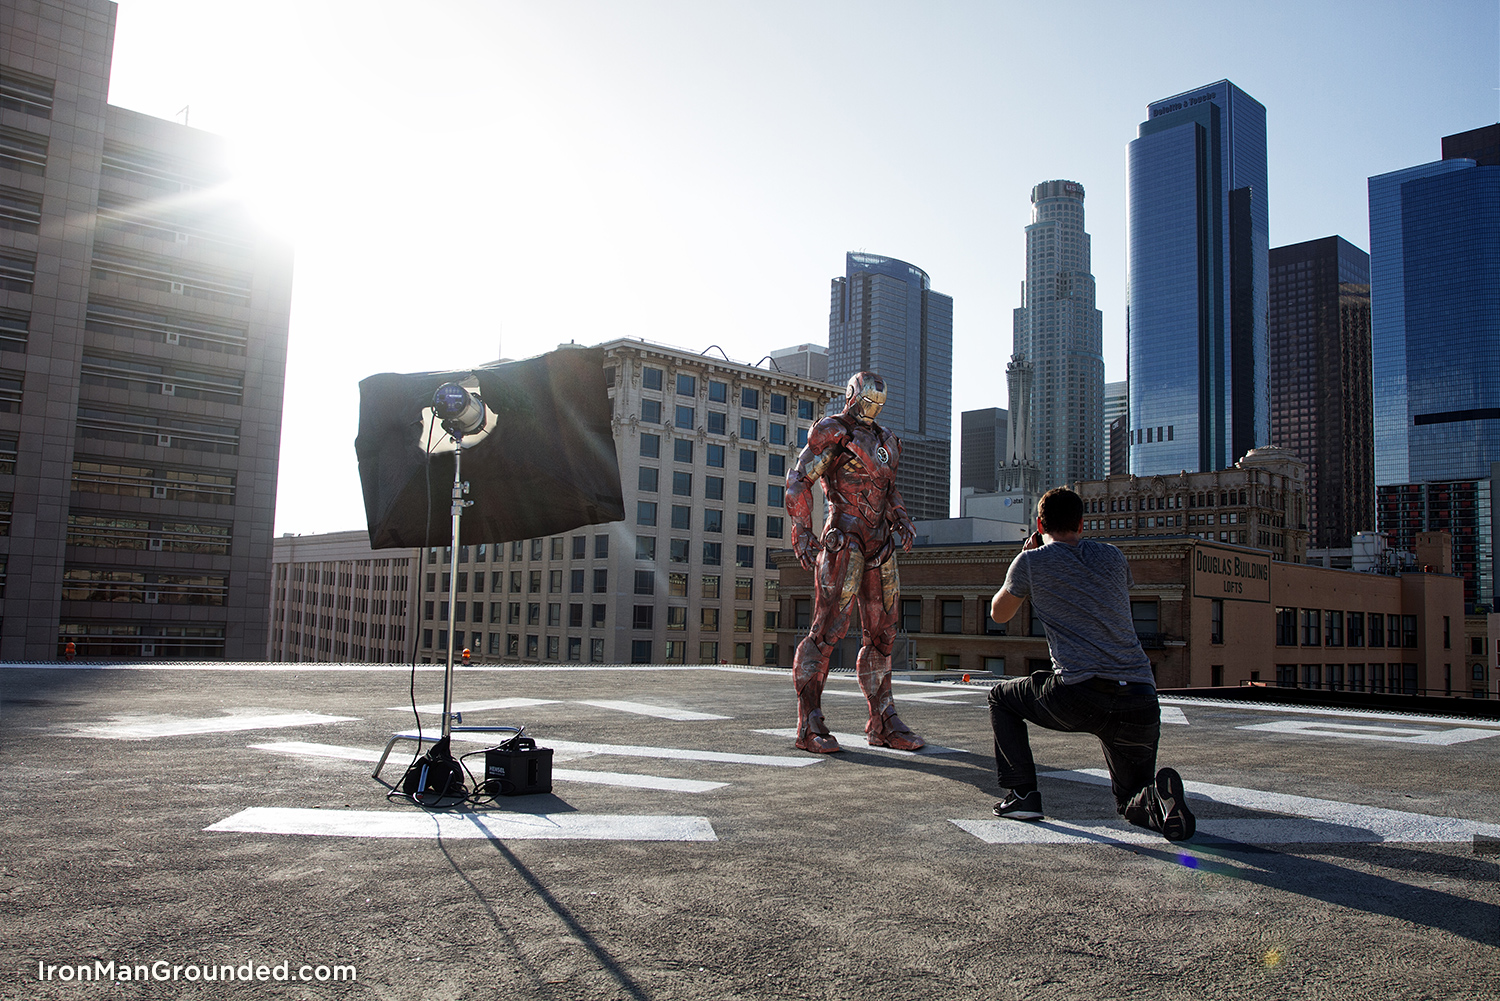 20_iron_man_grounded_making_of2